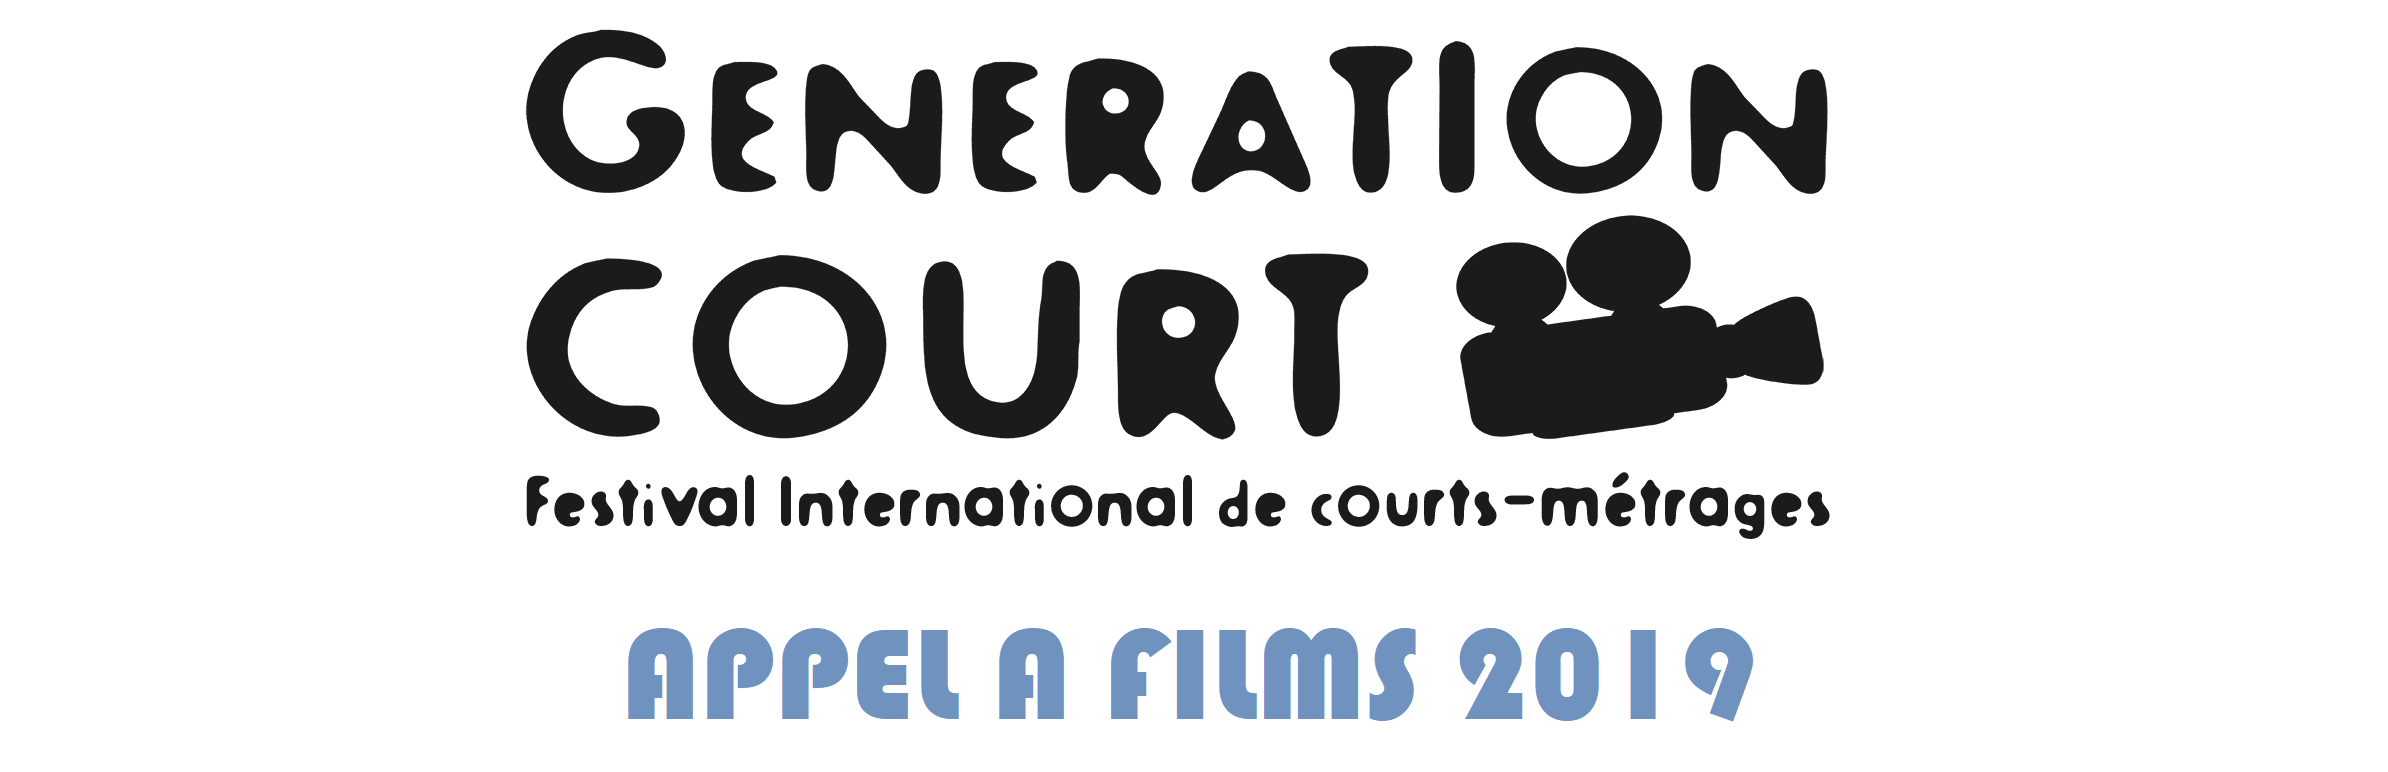 Logo_GC_appel à films 2019